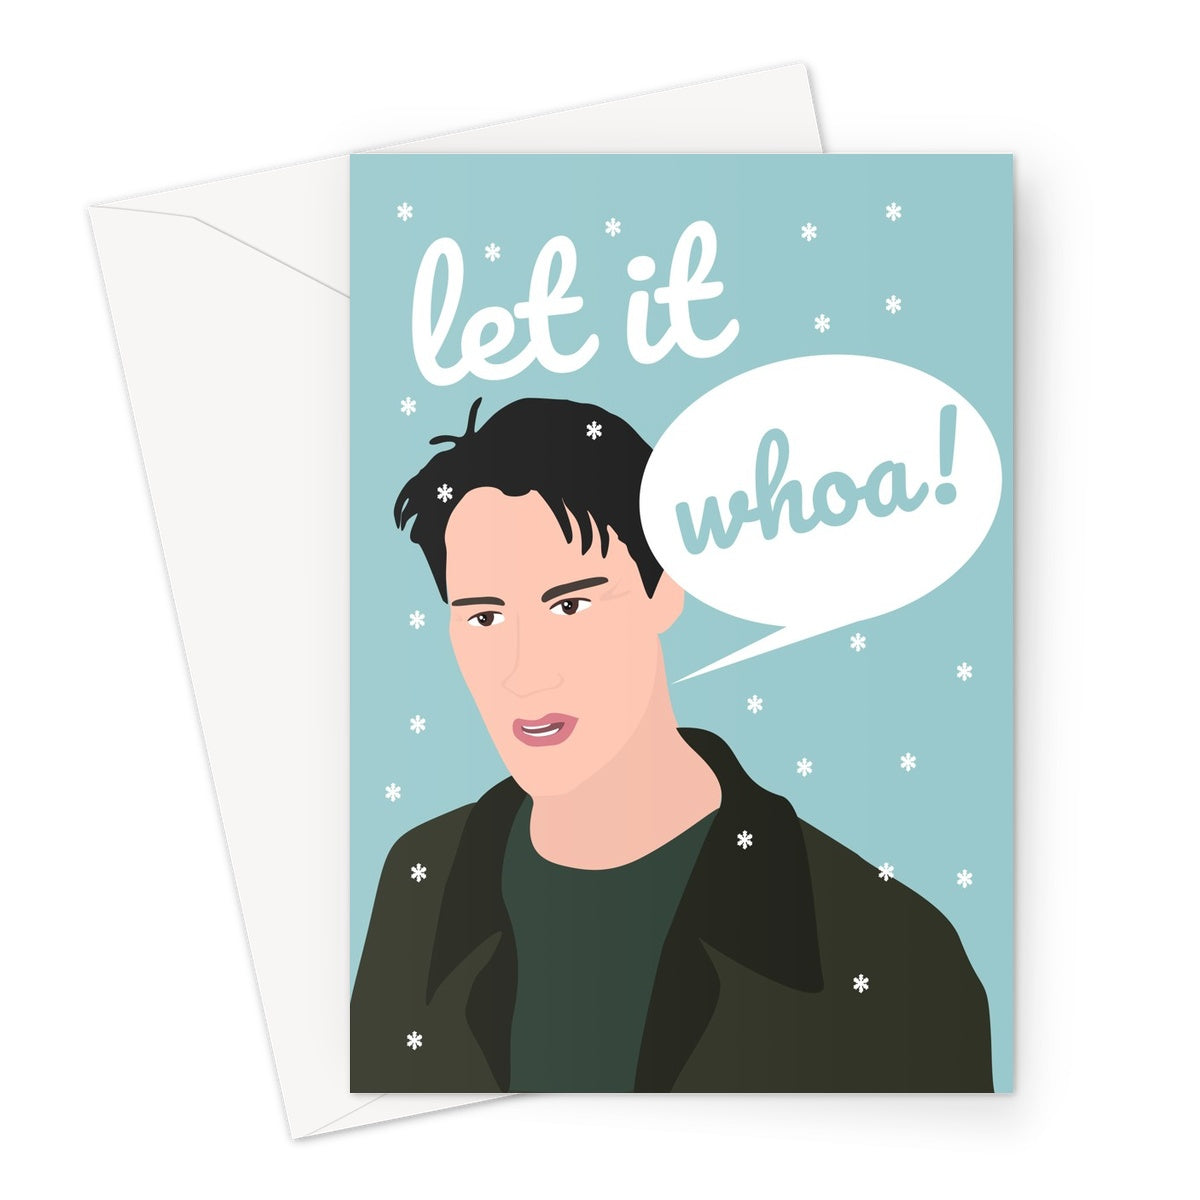 Let it Whoa Keanu Reeves Young Fan Christmas Xmas Woah Greeting Card